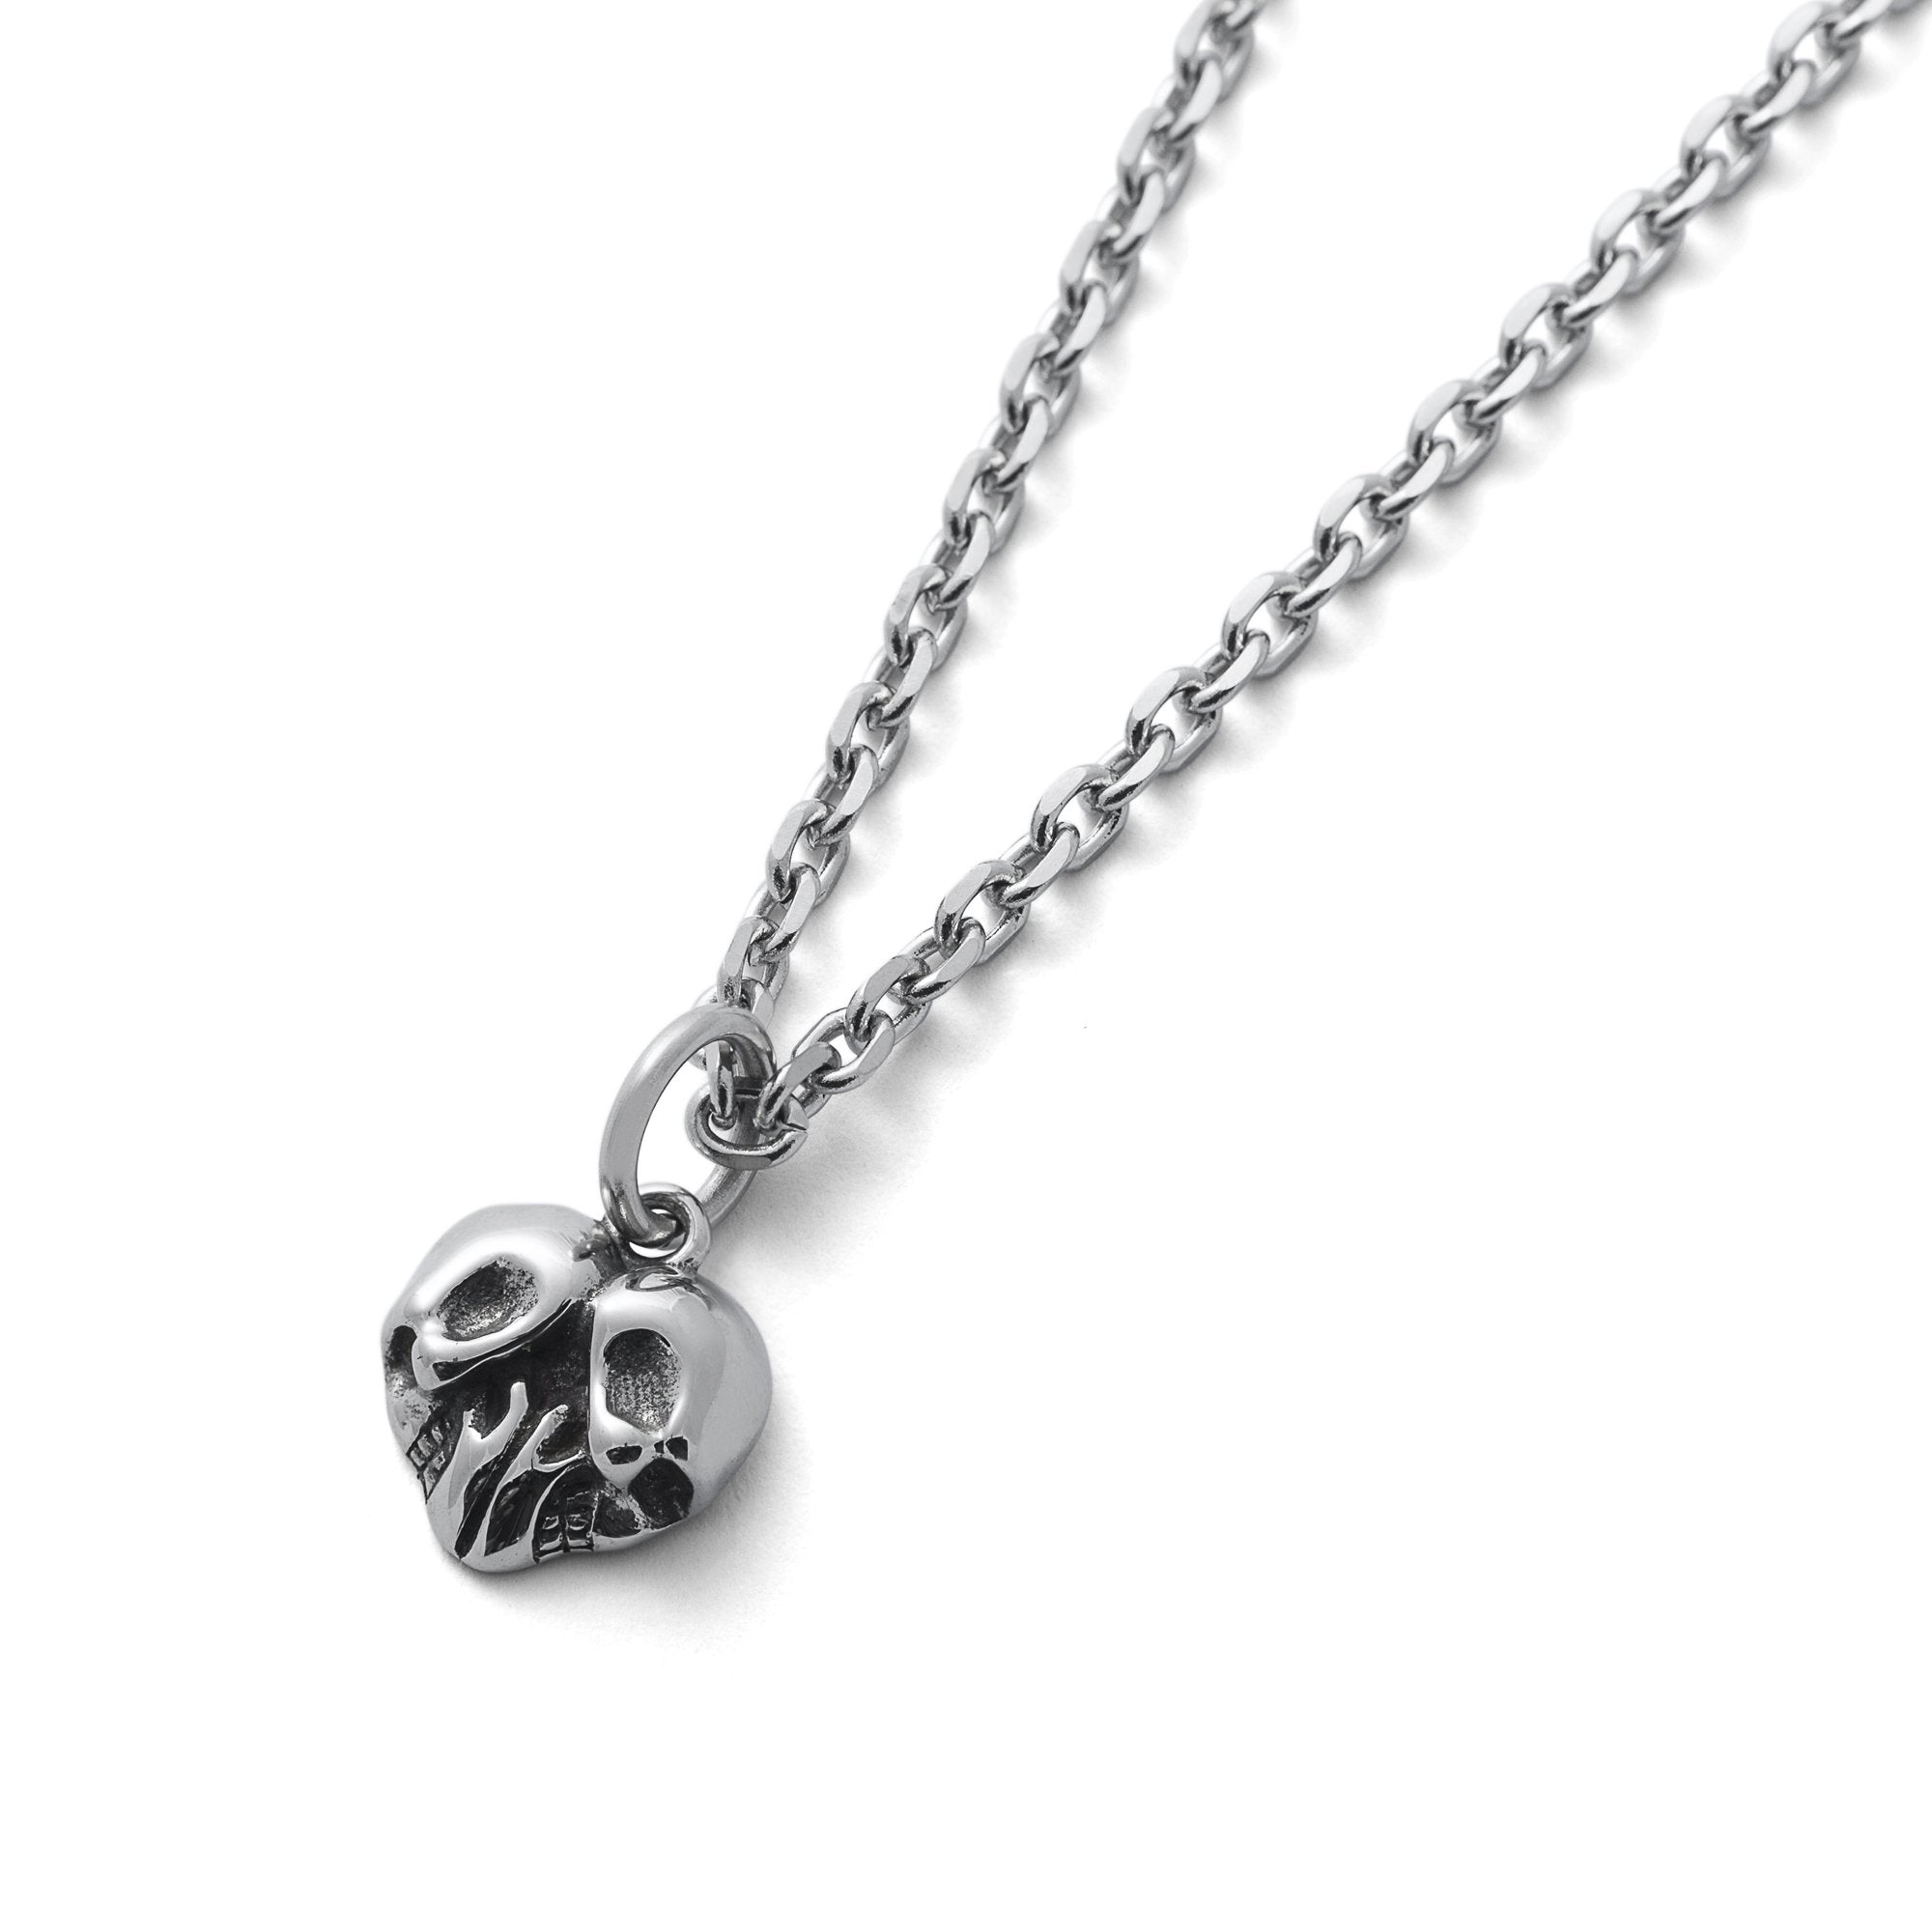 Skull Heart Mens Pendant Necklace by Statement Collective_01